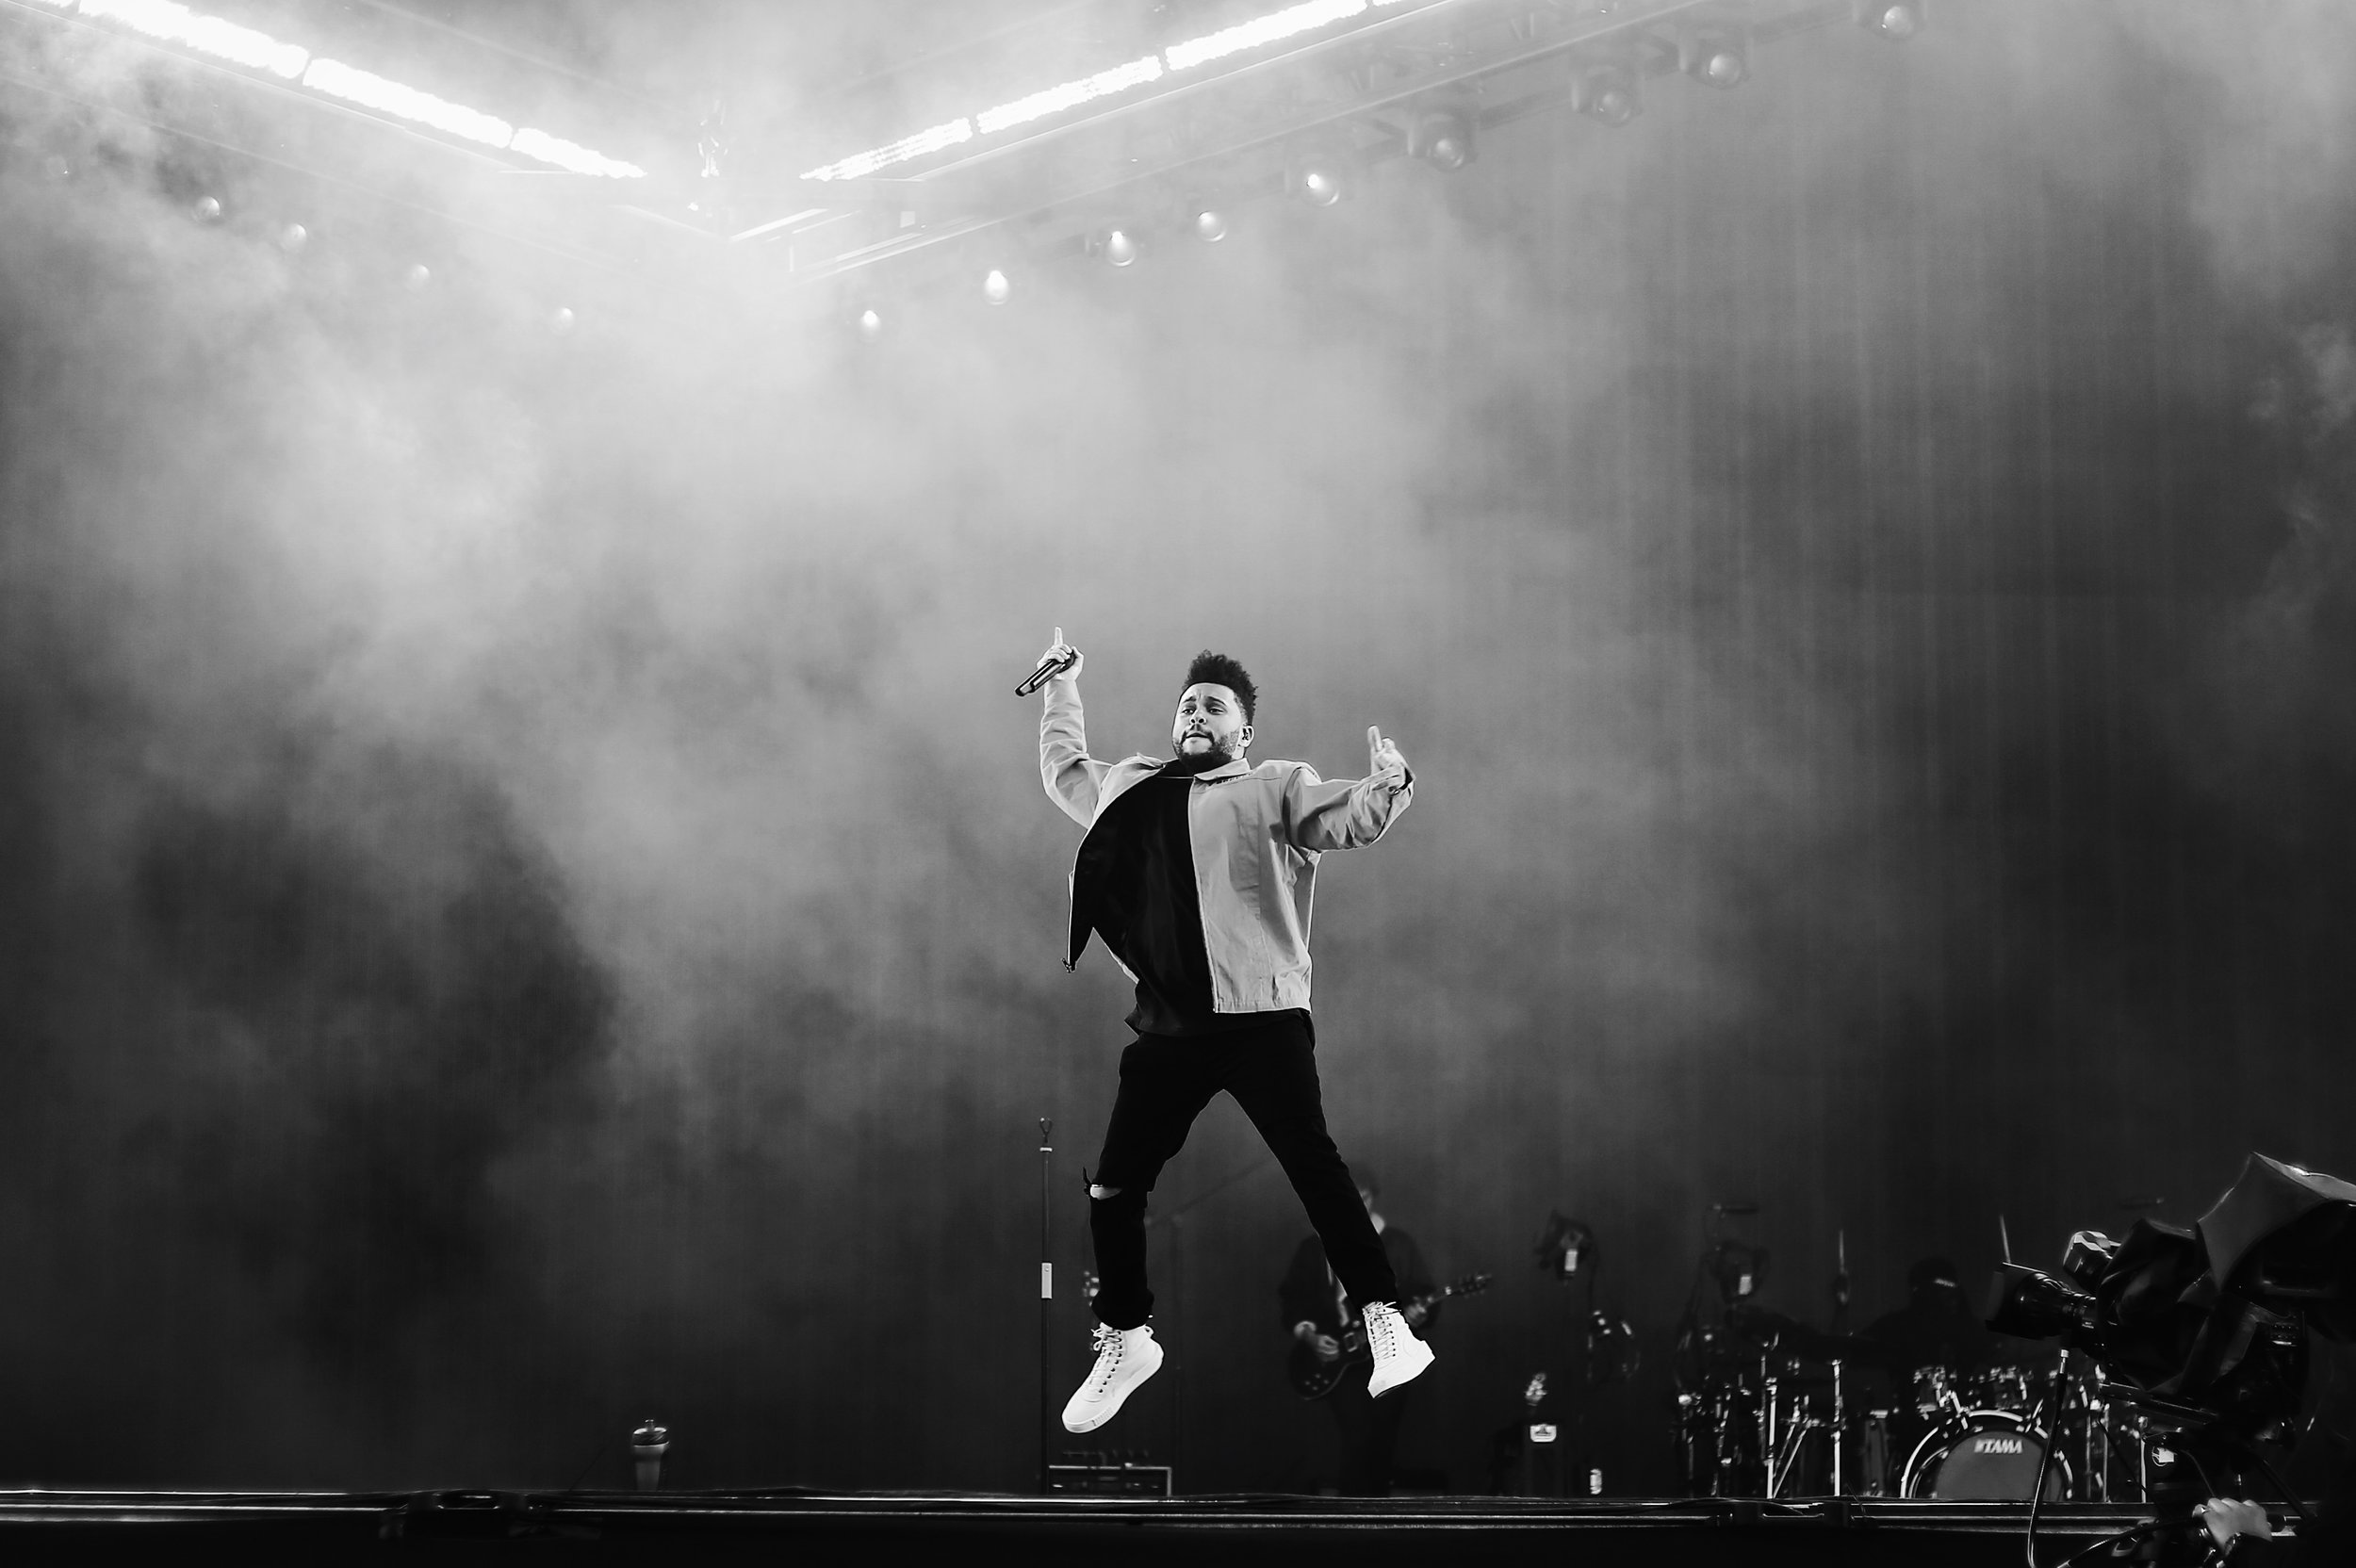 Wireless 2017 -  The Weeknd  - @jdshotyou - source jdshotyou.com.jpg